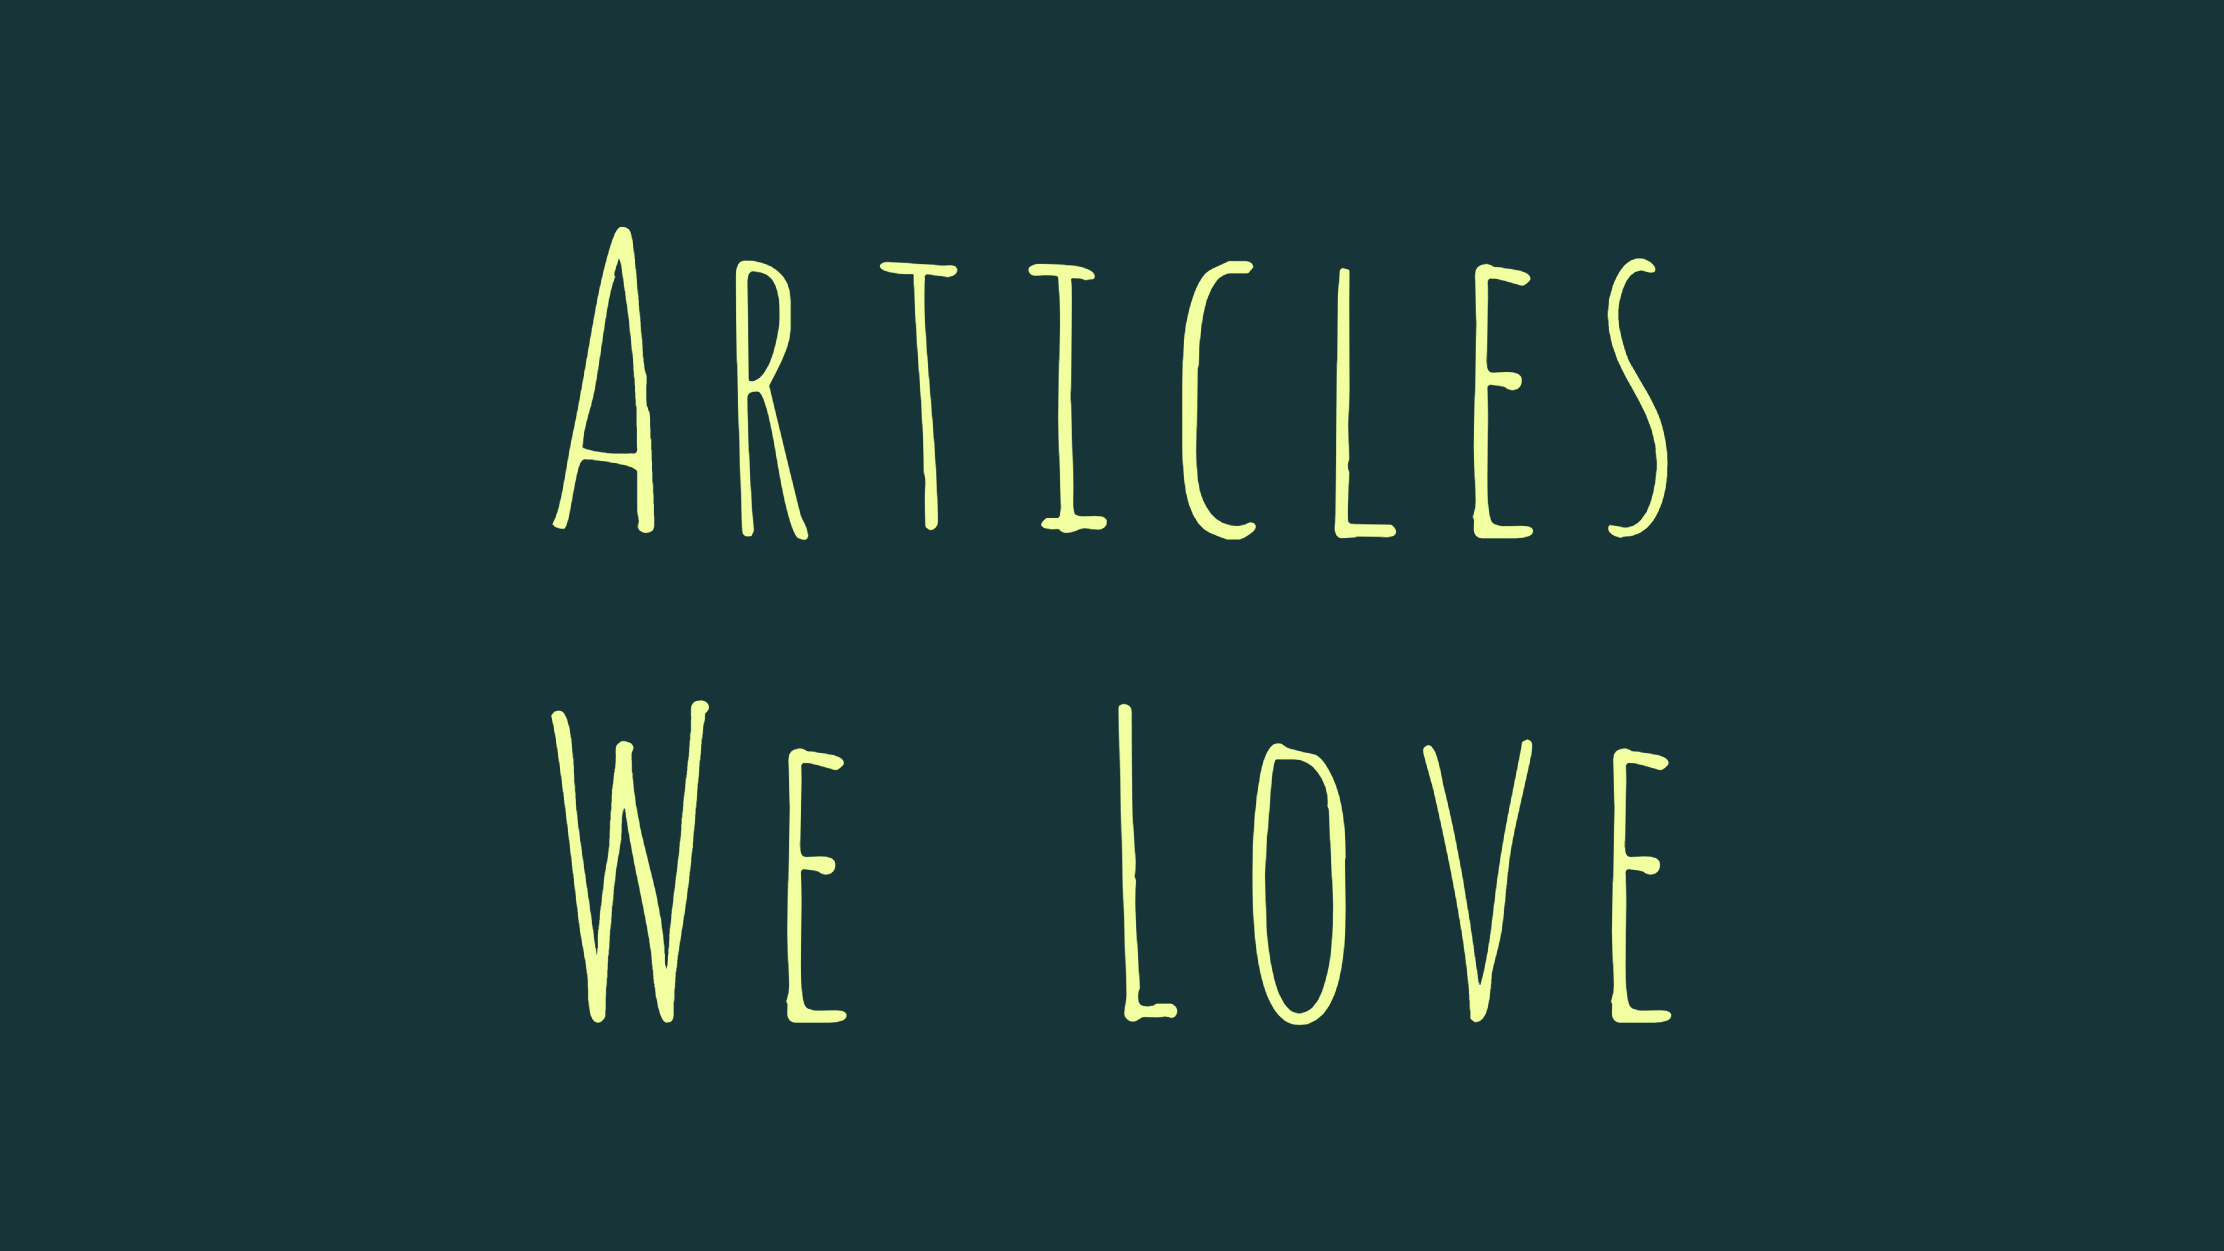 Links to articles that explore the importance of diverse programming including editorials, implementation methods, profiles of composers and programs, studies, and other topics.